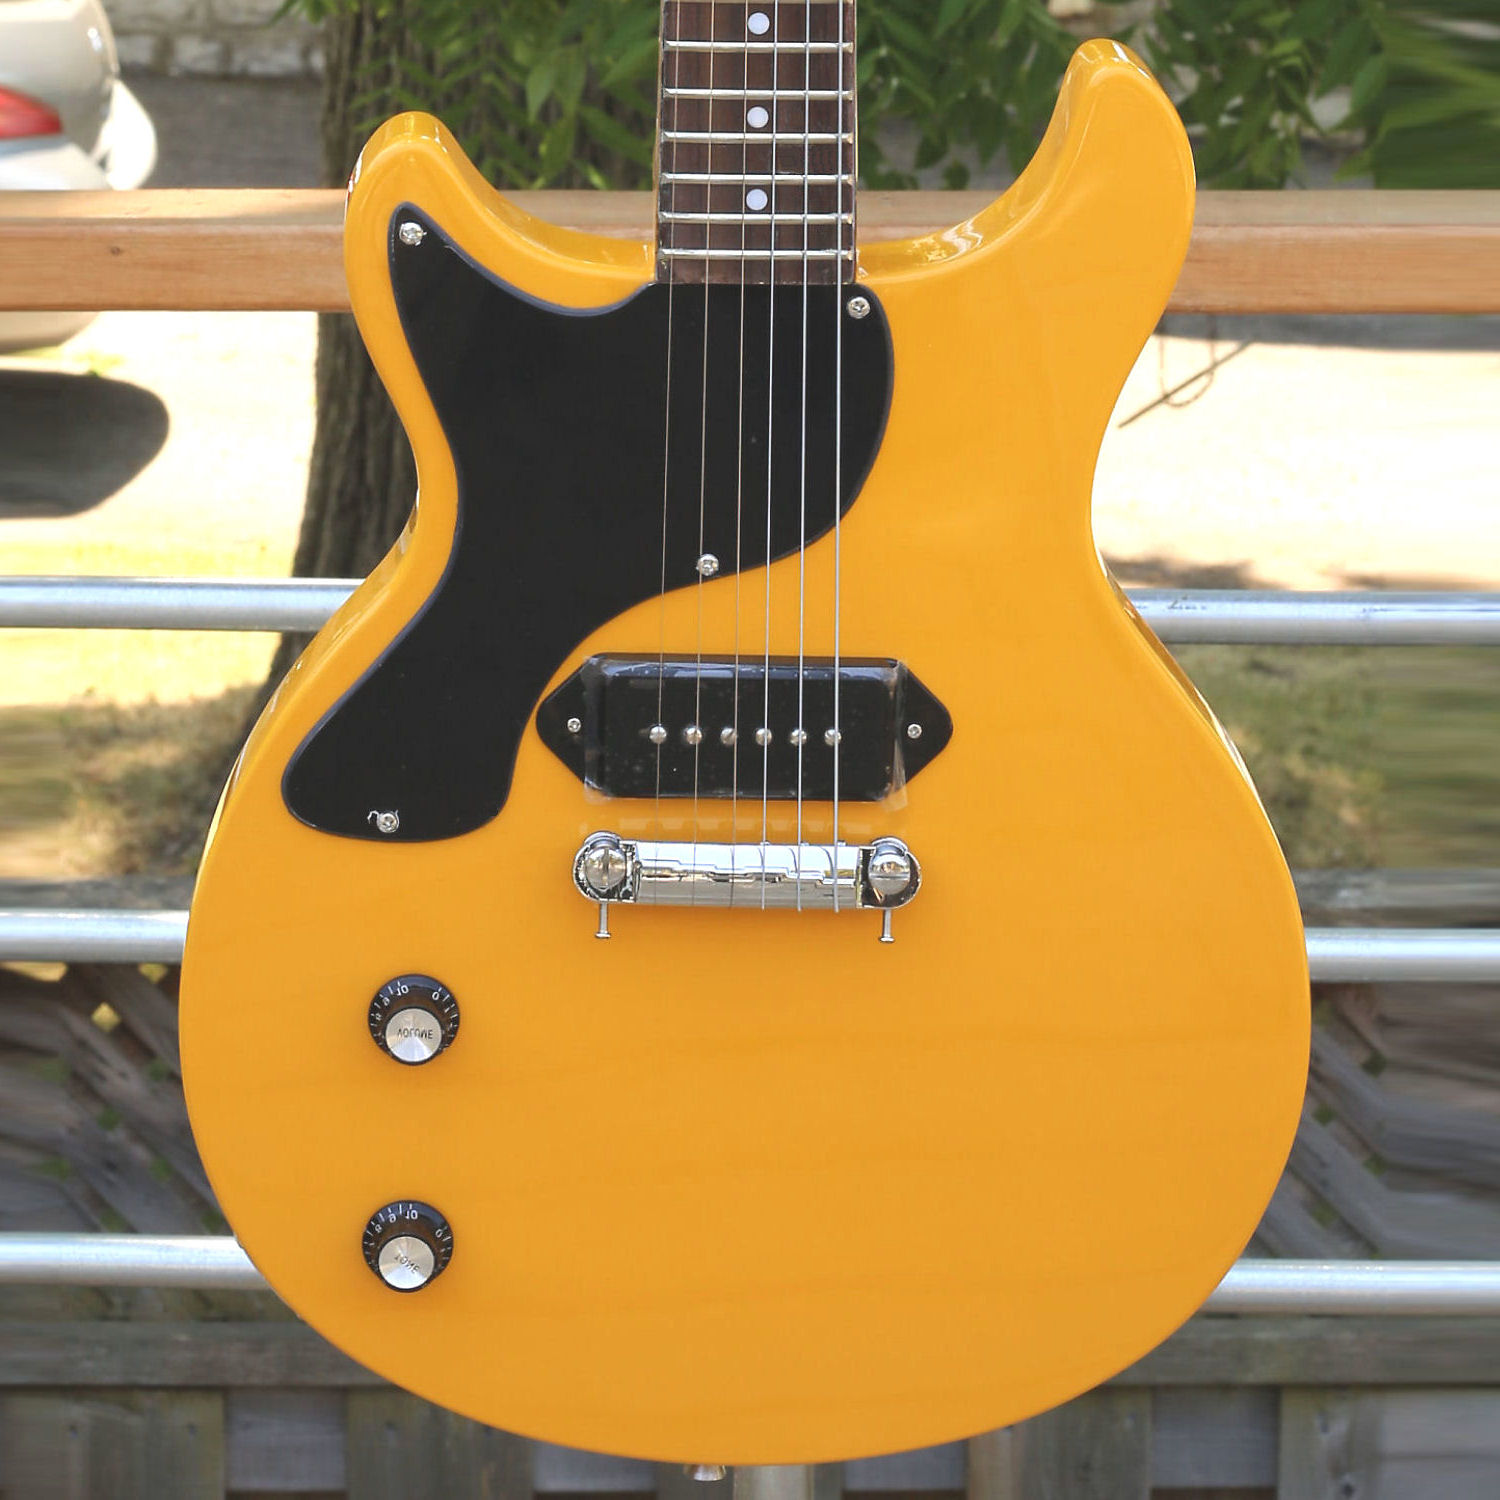 Tokai Love Rock Jr Lp 56 Dc Yellow Left Handed Music Express Canada Les Paul Junior Wiring Harness